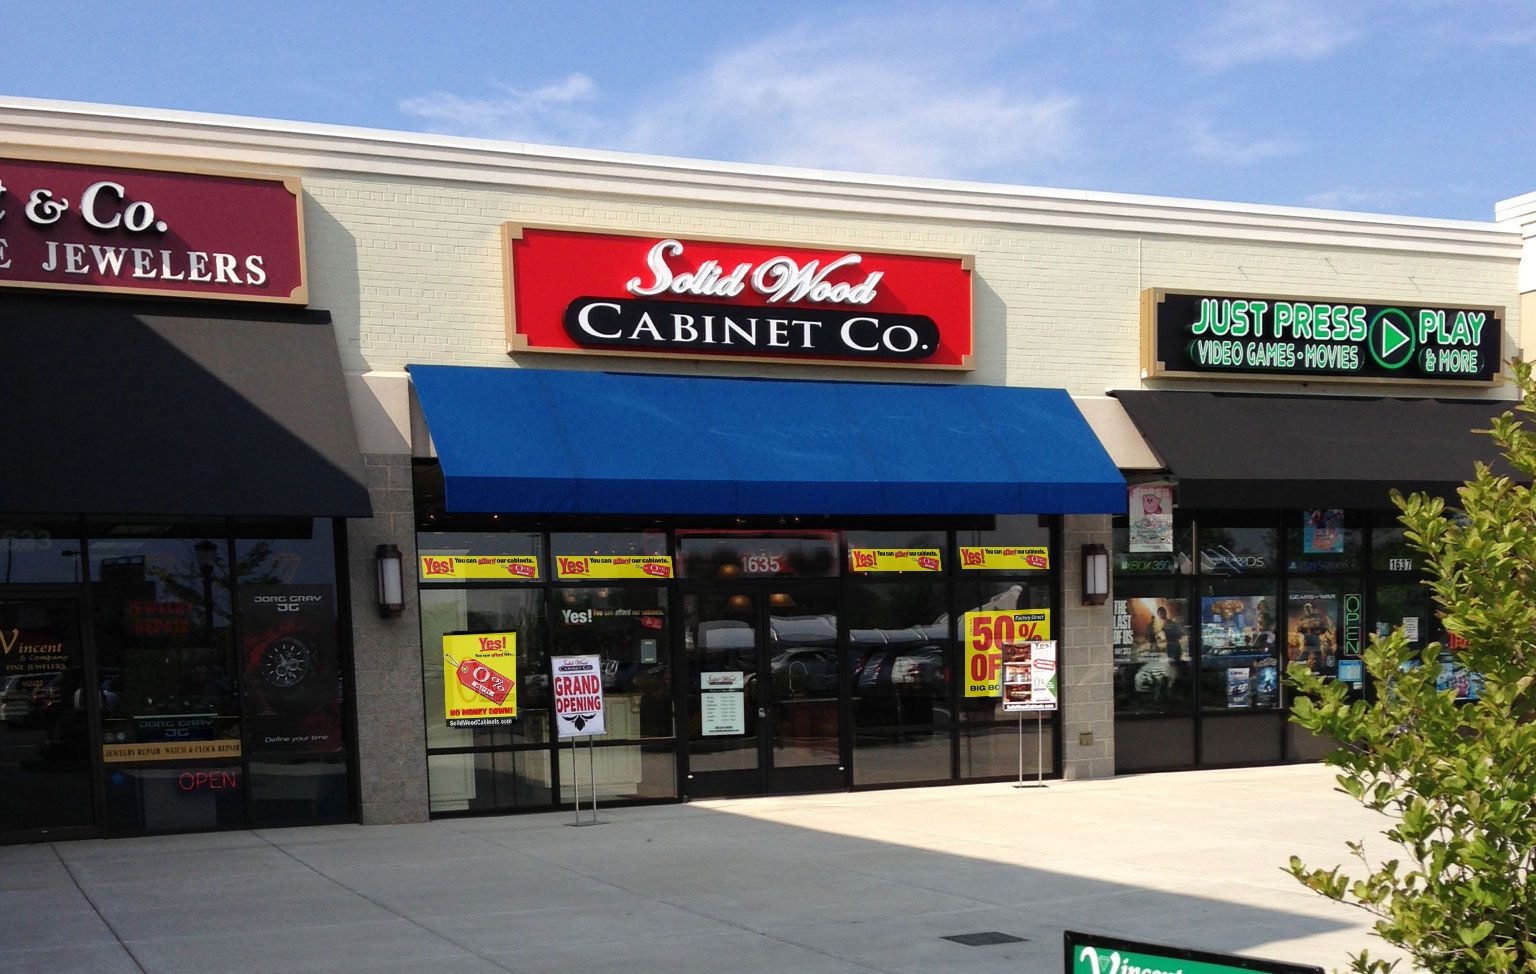 Charmant The Solid Wood Cabinets Company Showroom In Lancaster, PA! Lancaster  Shopping Center 1635 Lititz Pike Lancaster, PA 17601 267 587 0607